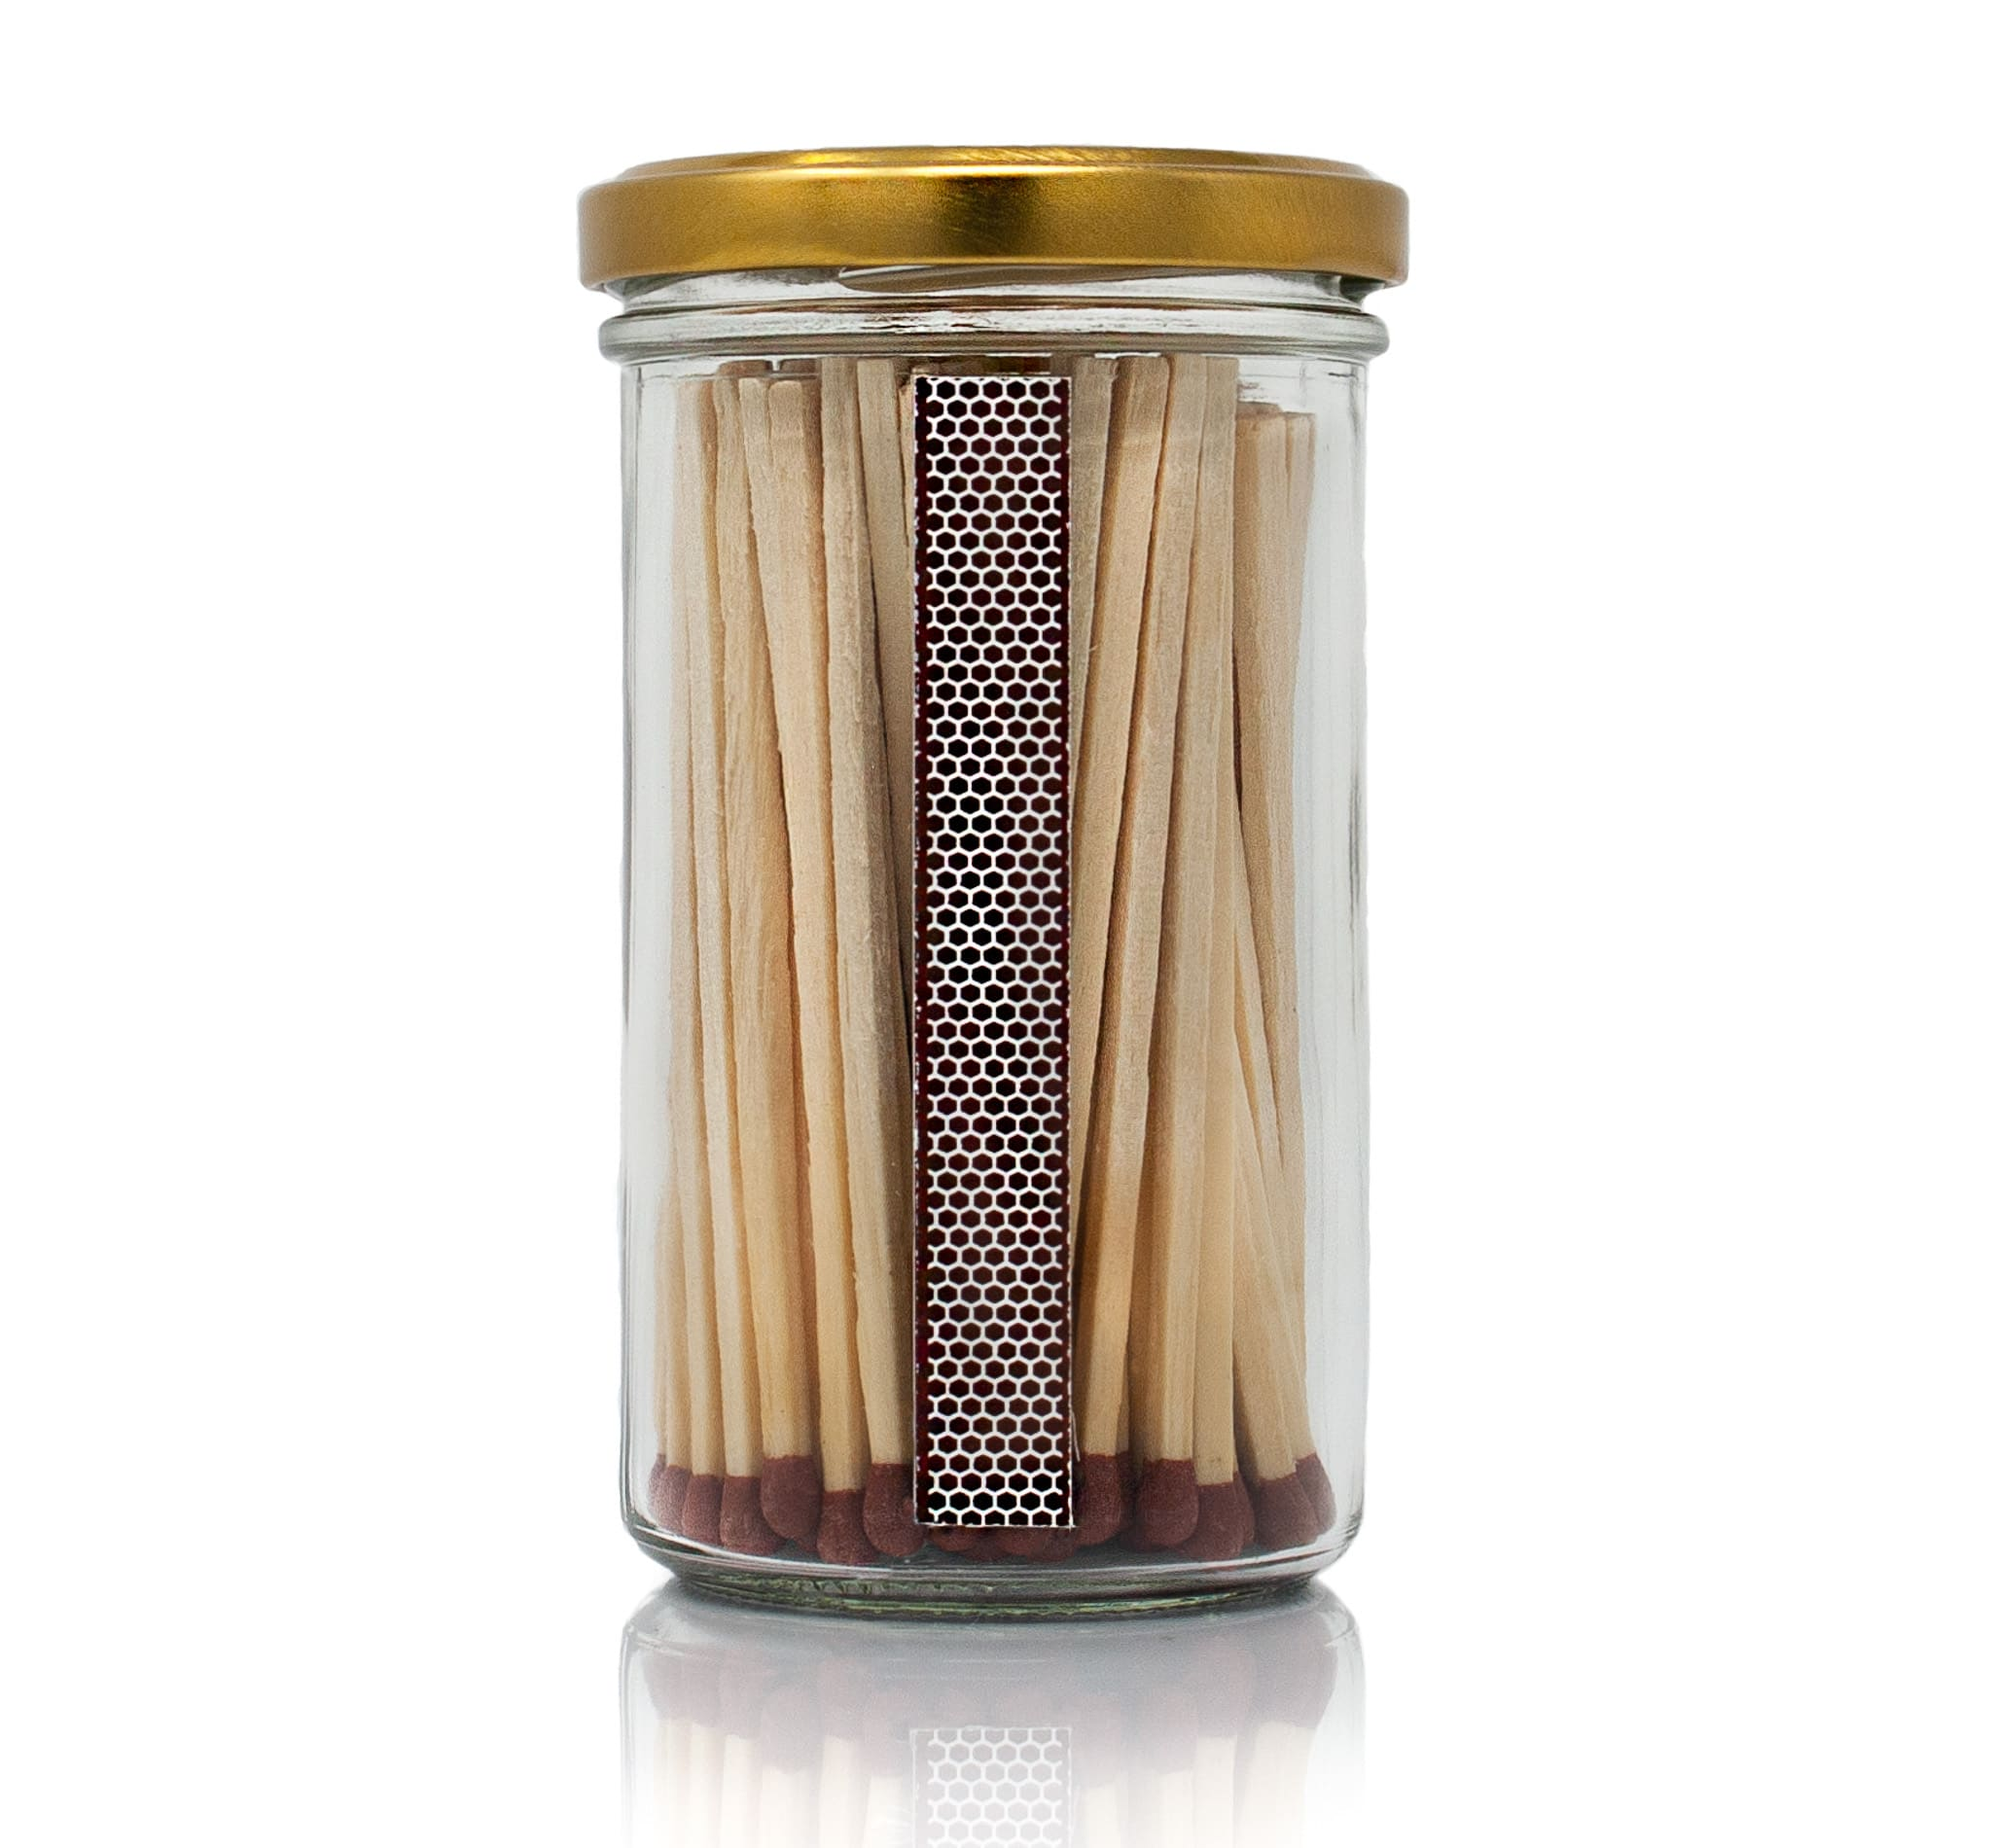 Extra long candle matches signature vintage jar back by Twoodle Co Natural Home Scents